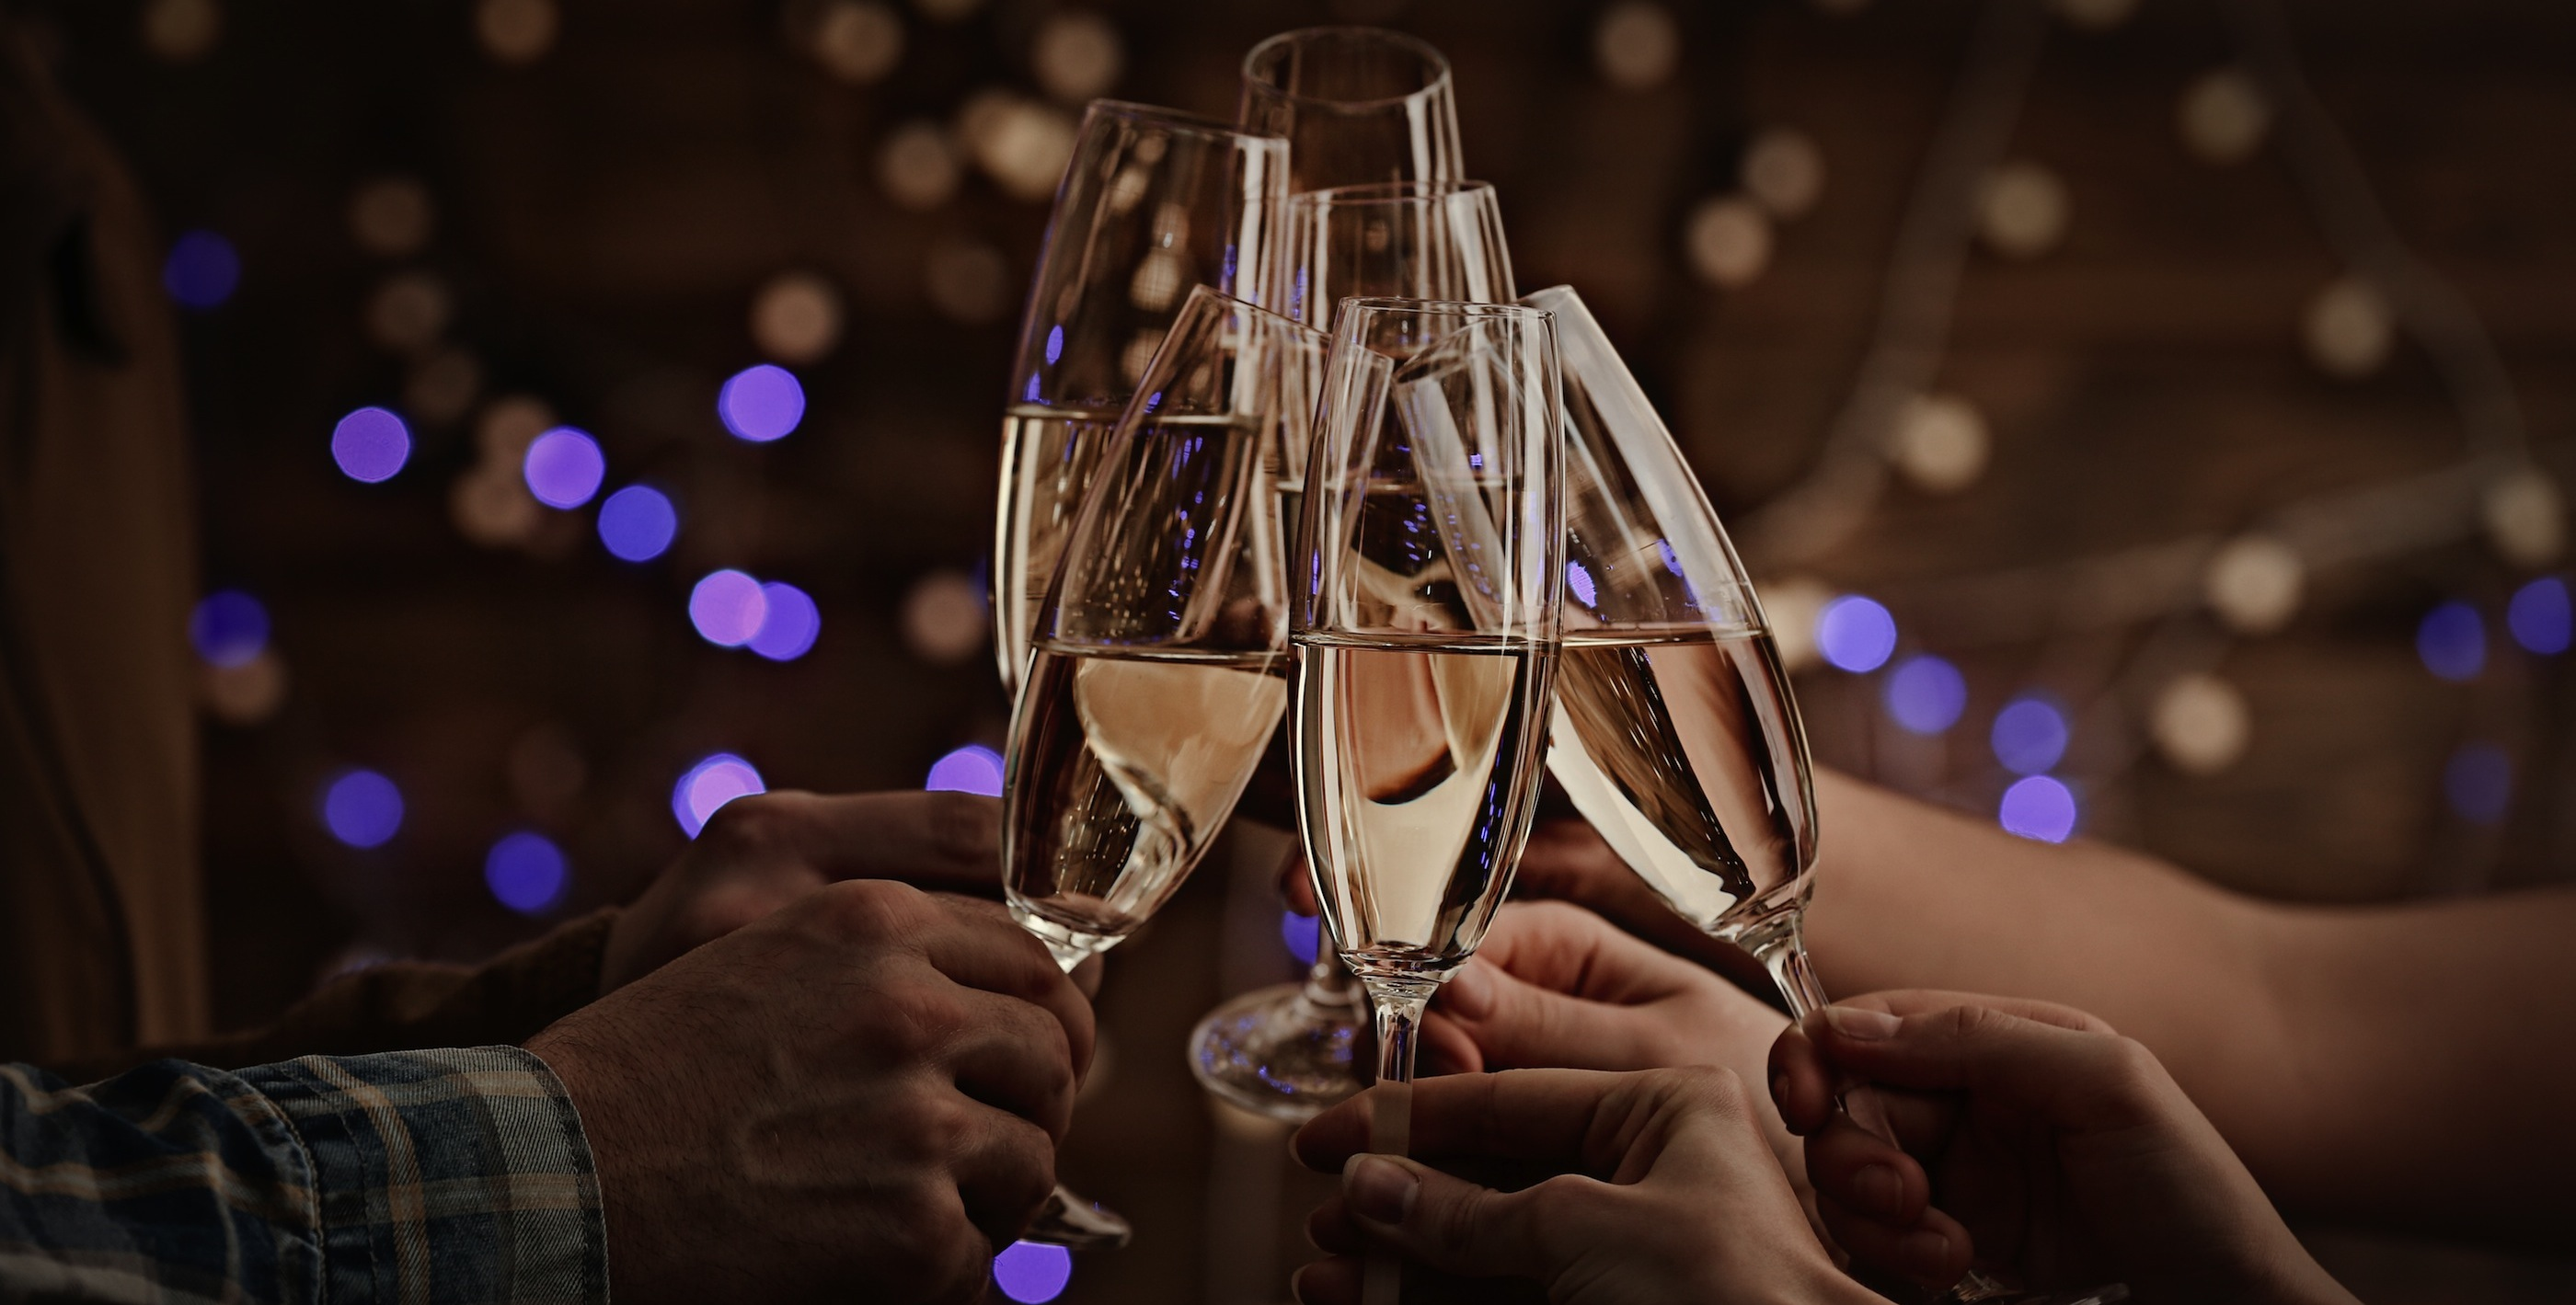 5 Wine Tips for Throwing an NYE Party That Doesn't Suck